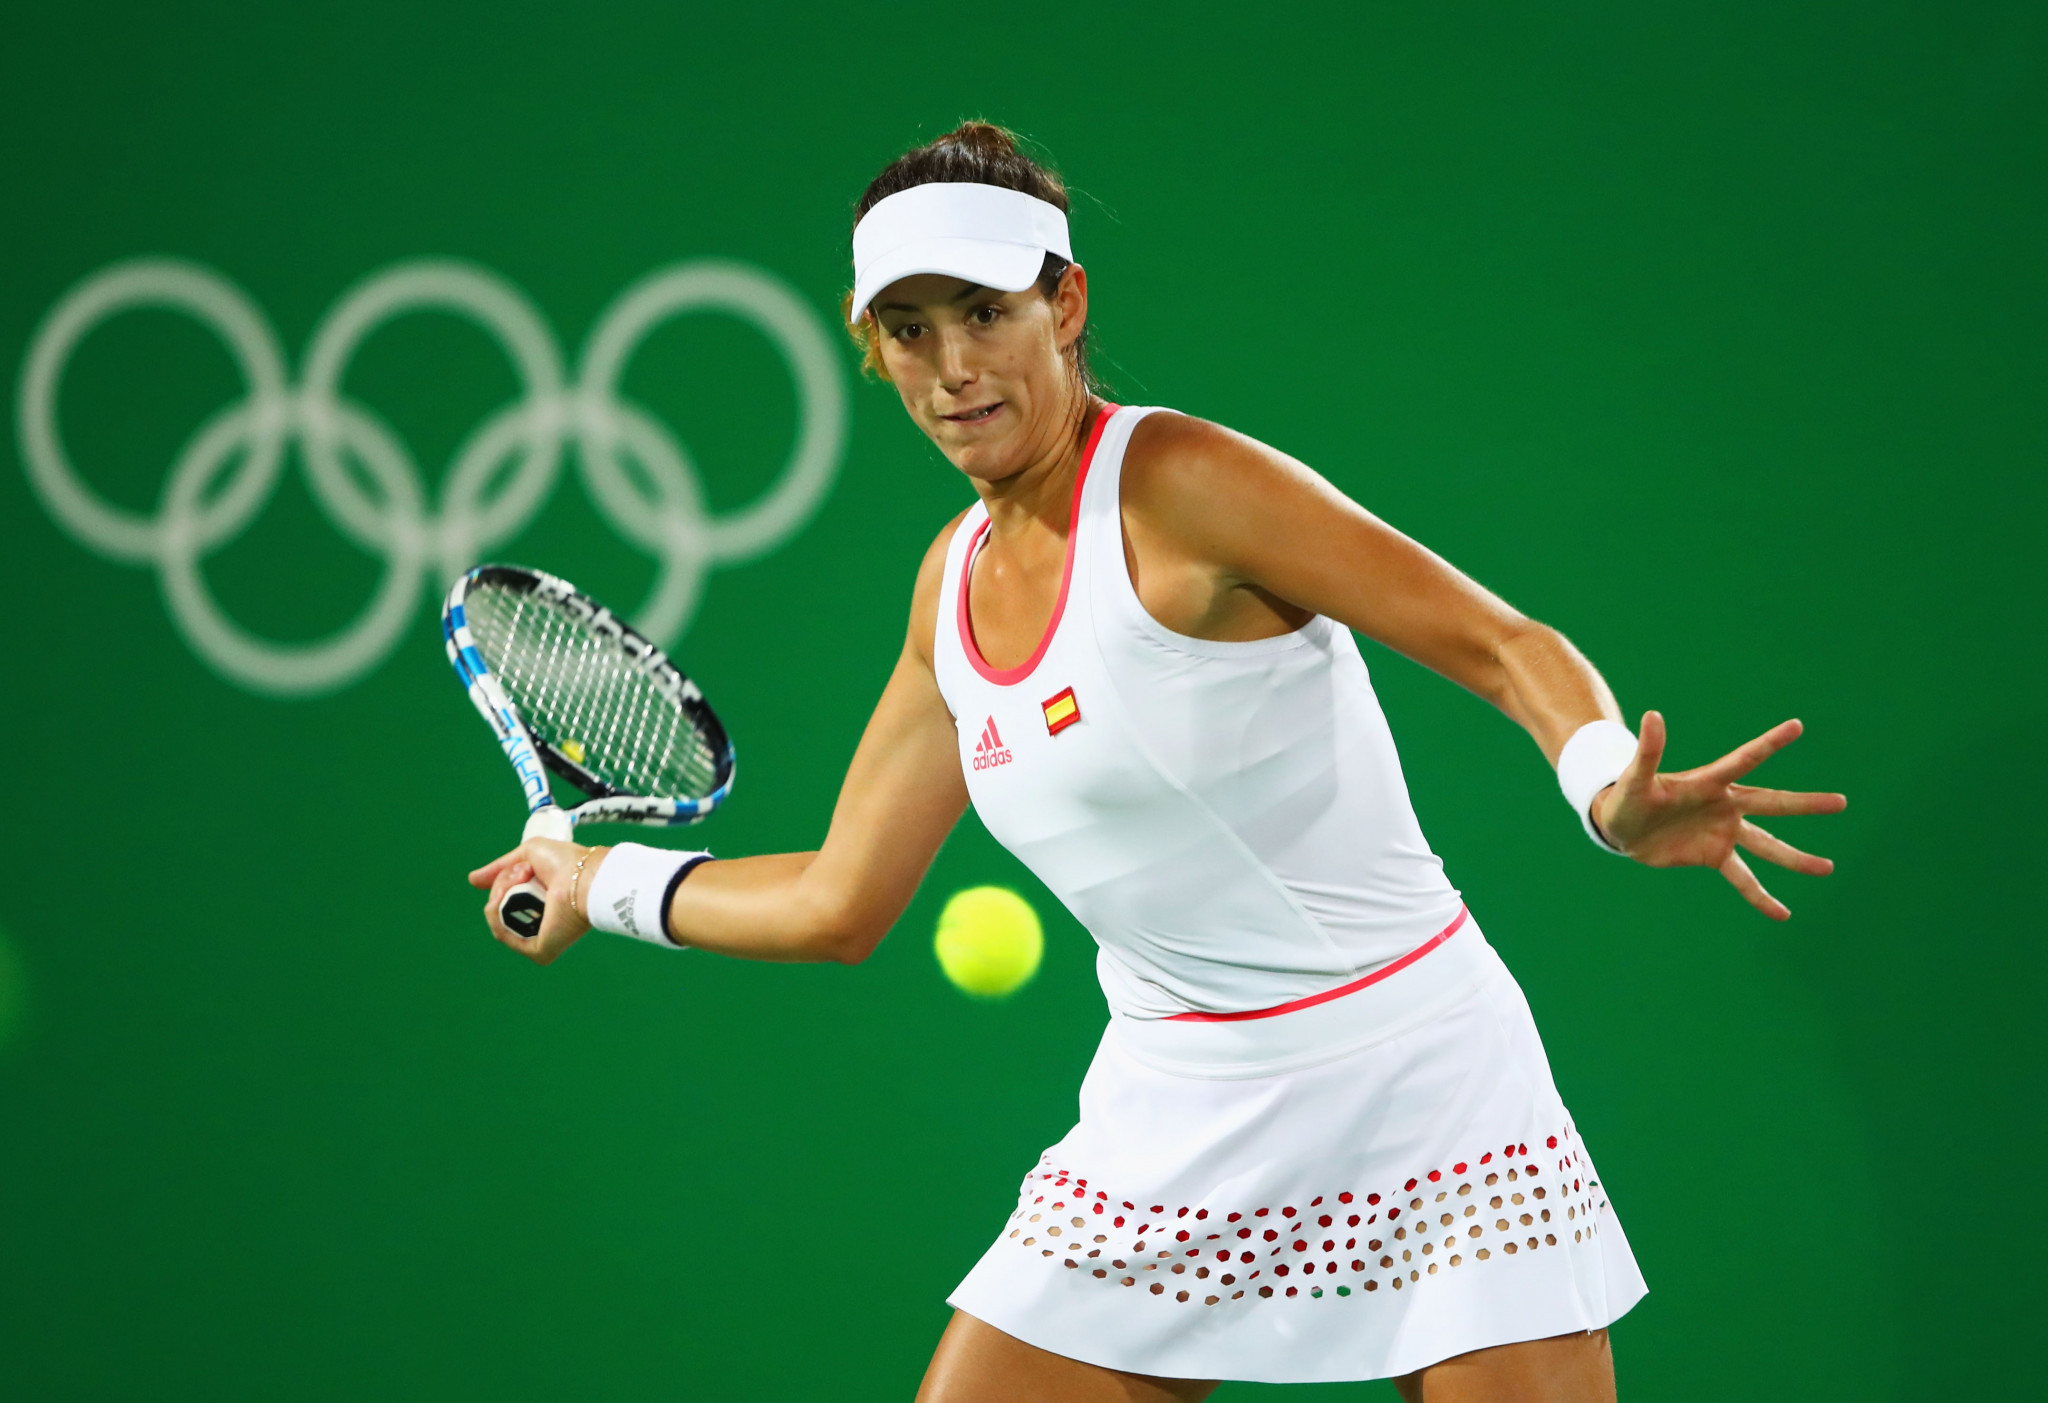 Garbiñe Muguruza reached the third round of the women's singles in her previous Olympic appearance at Rio 2016 ©Getty Images